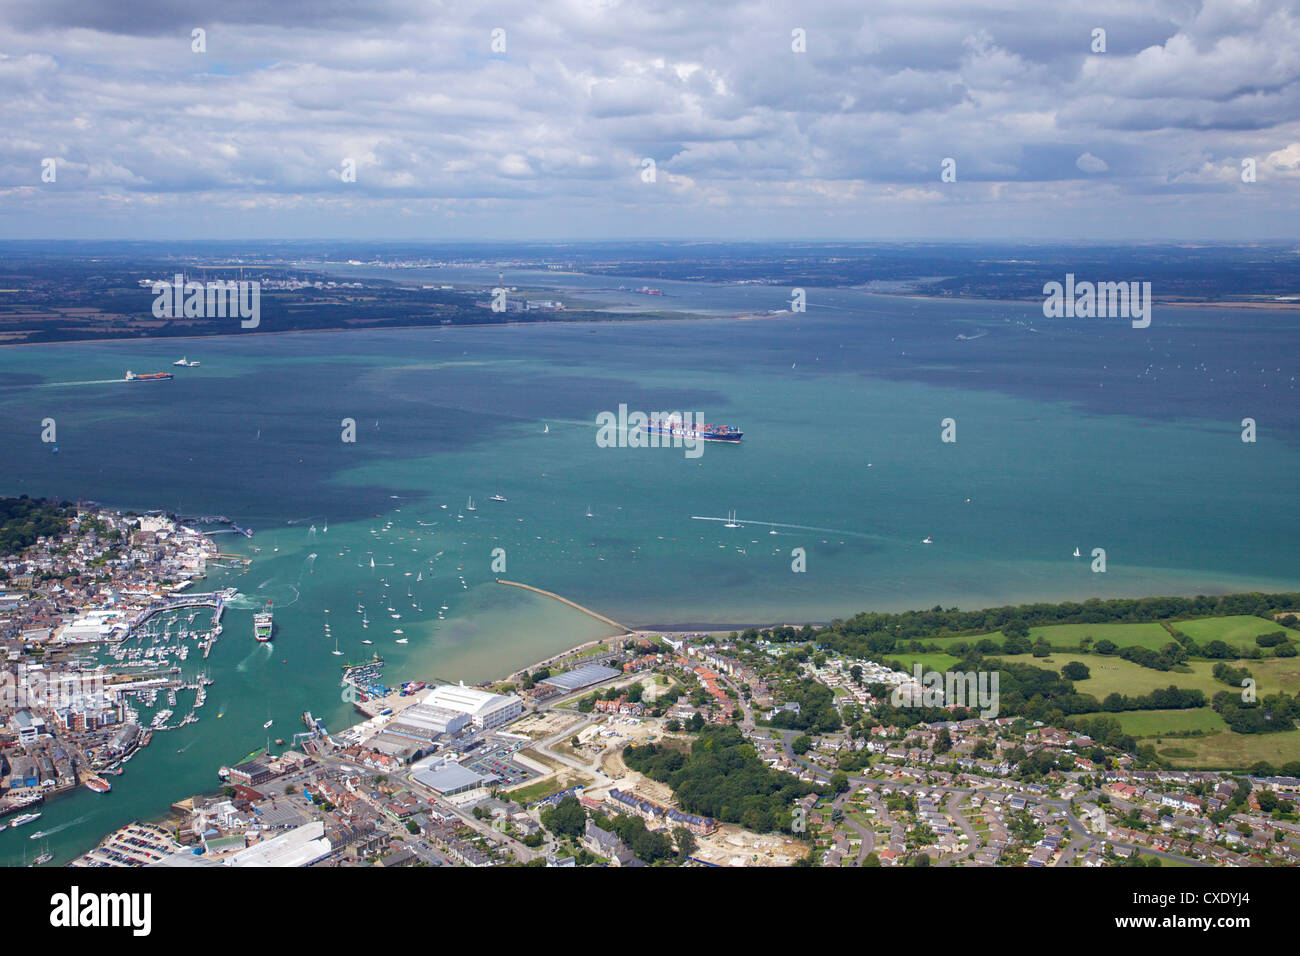 Aerial view of Cowes and the Solent, Isle of Wight, England, United Kingdom, Europe - Stock Image